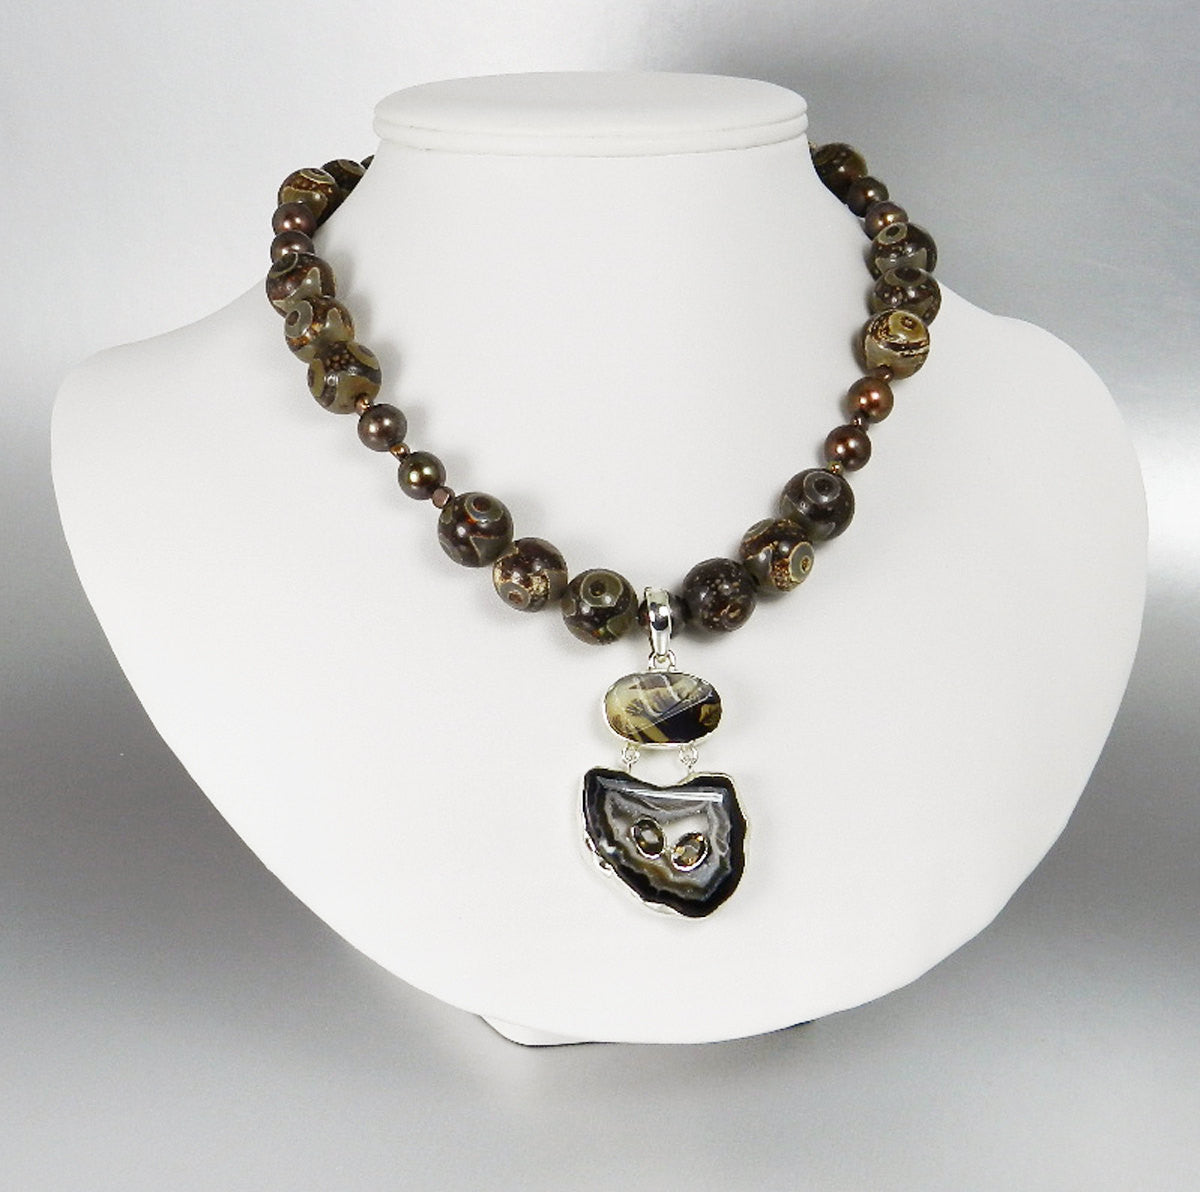 Agate Slice Druzy Necklace - Tribal Jewelry African Necklace With Raw Agate and Brown Pearls Scenic Agate Hinged Pendant